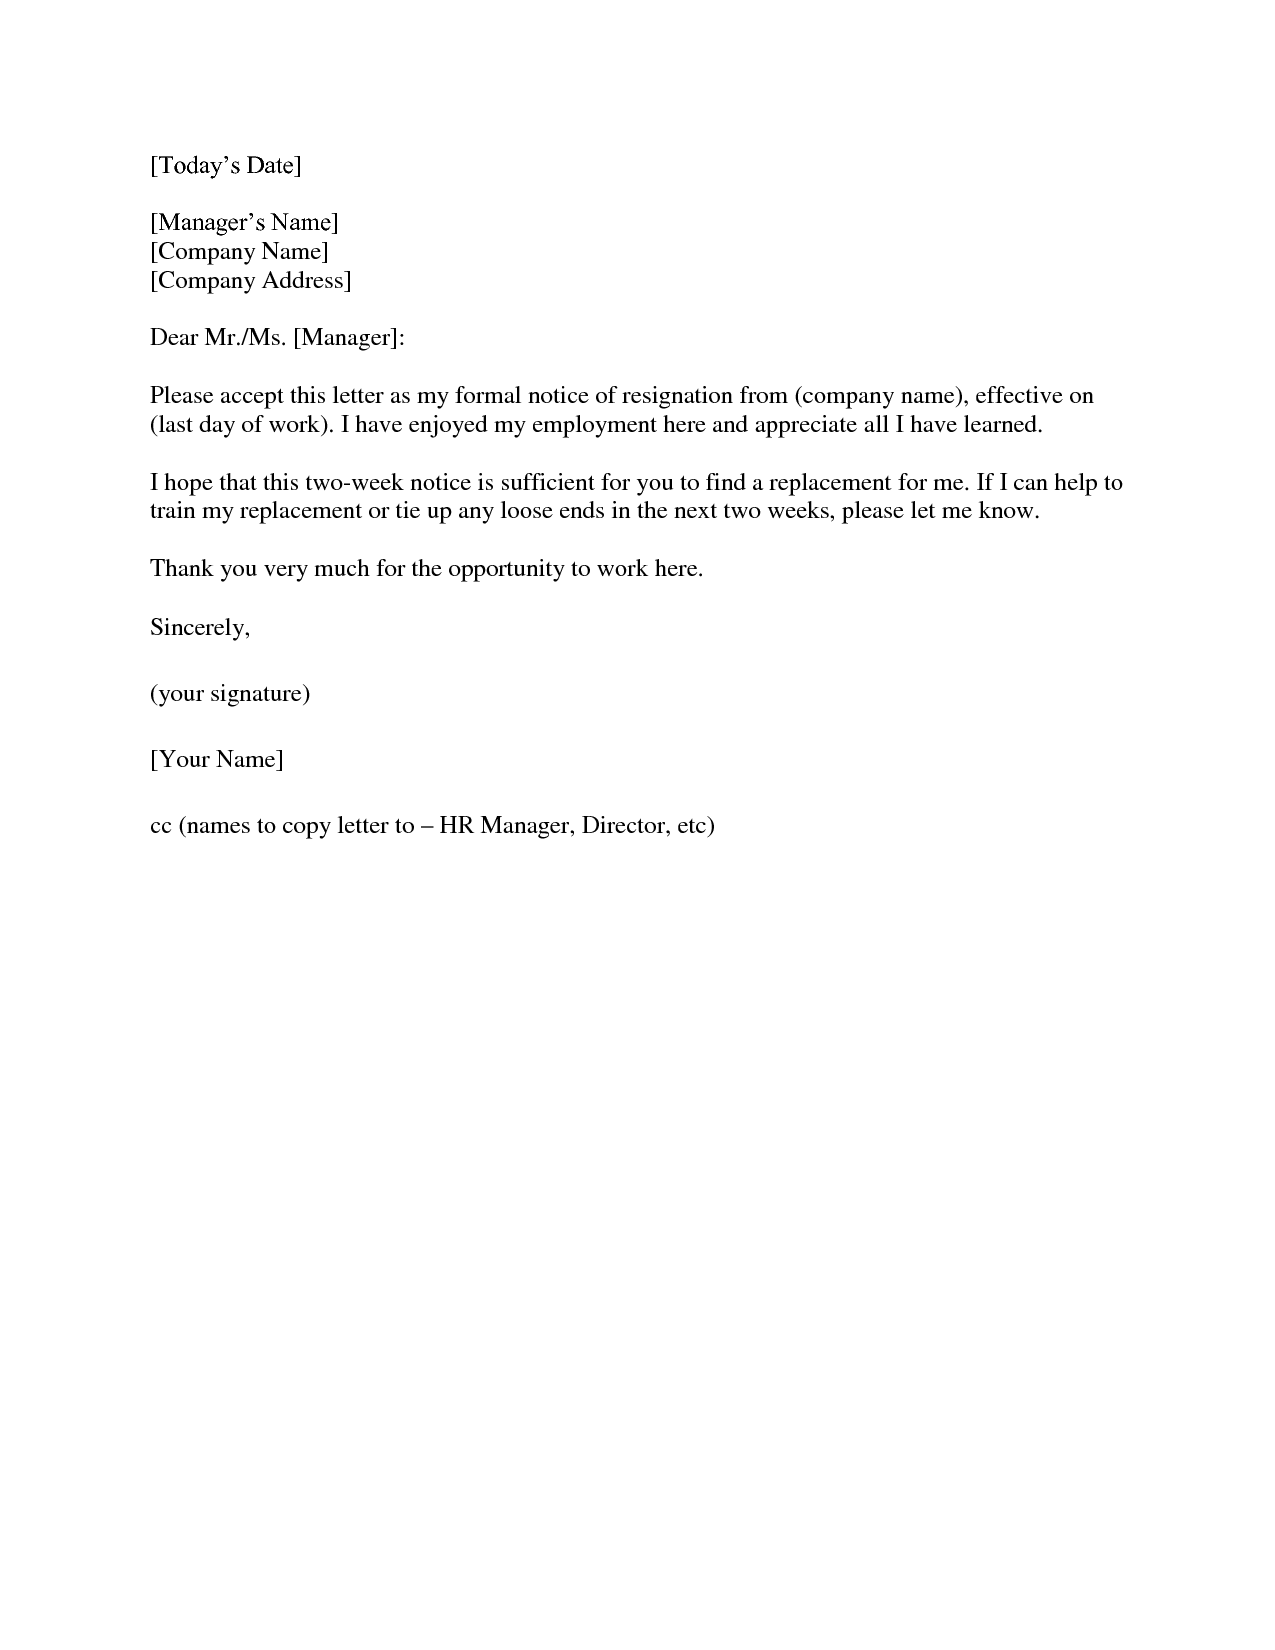 resignation letter 2 week notice wowcom image results